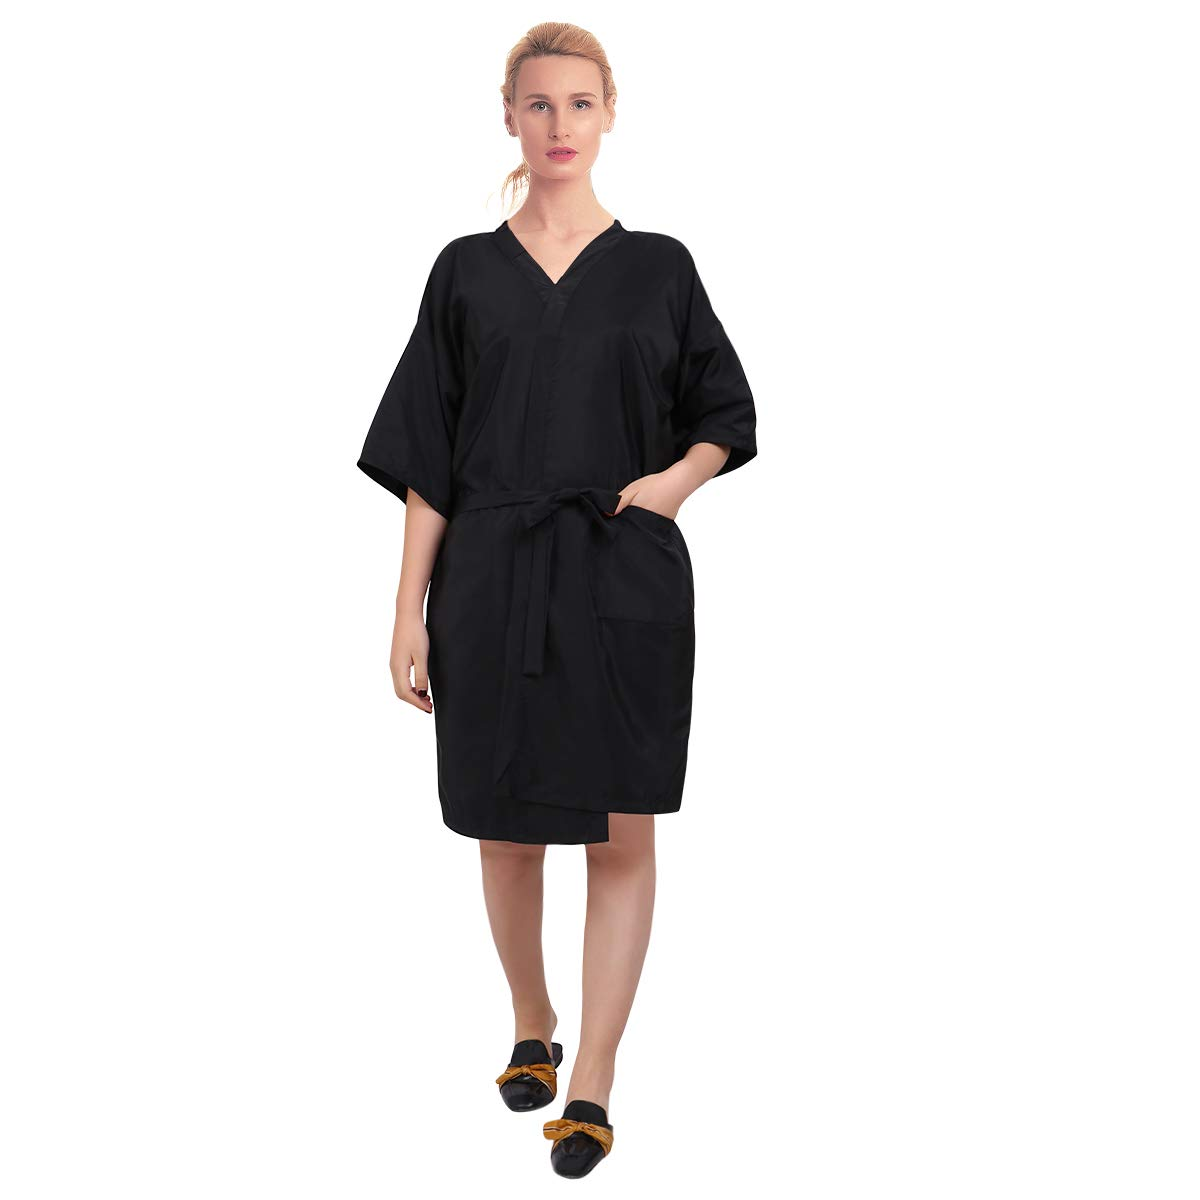 Barber Grooming Smock for Women Men, Salon Client Gowns Capes Robes Hair Salon Smock Waterproof (Black)